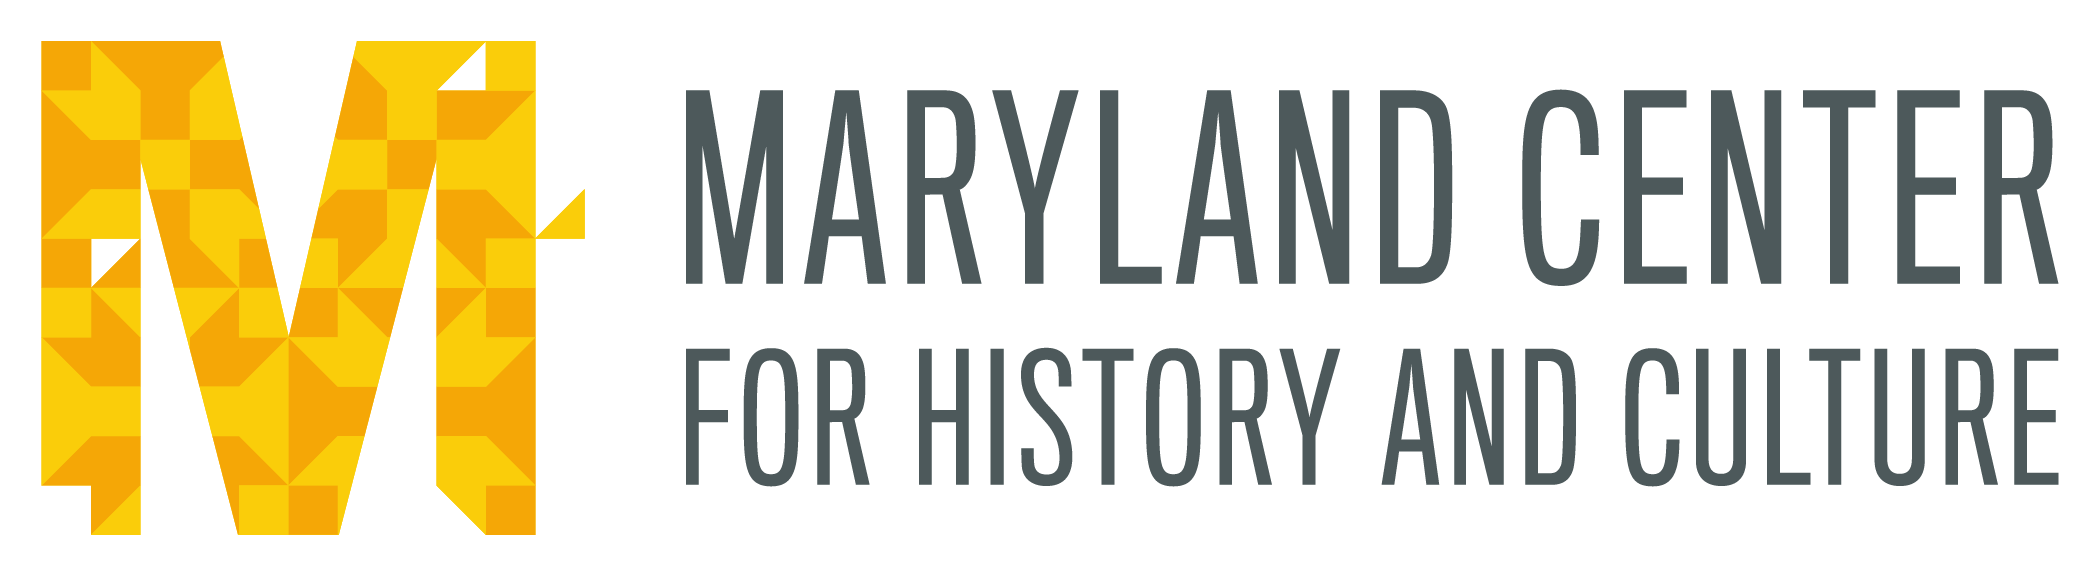 maryland-center-for-history-and-culture-logo